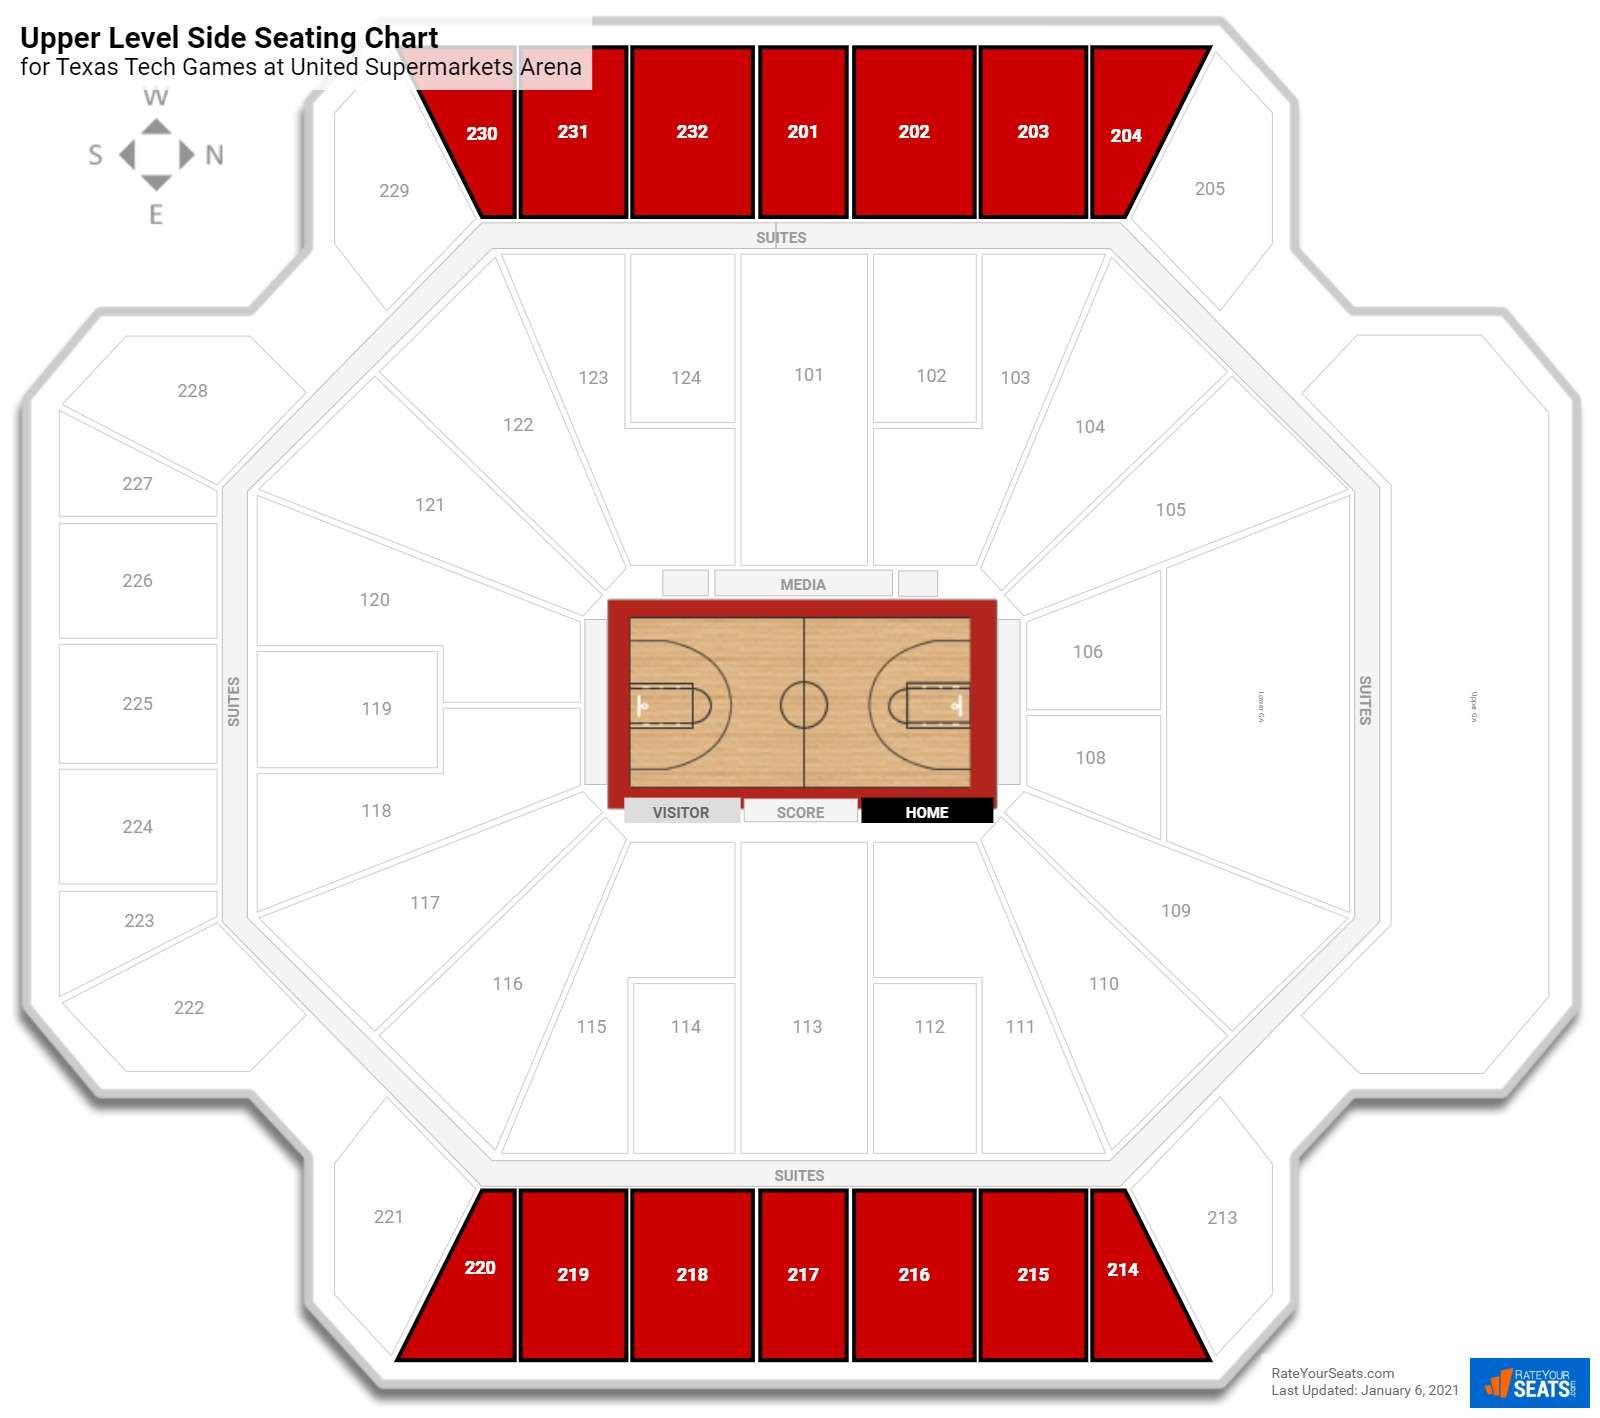 United Supermarkets Arena (Texas Tech) Seating Guide